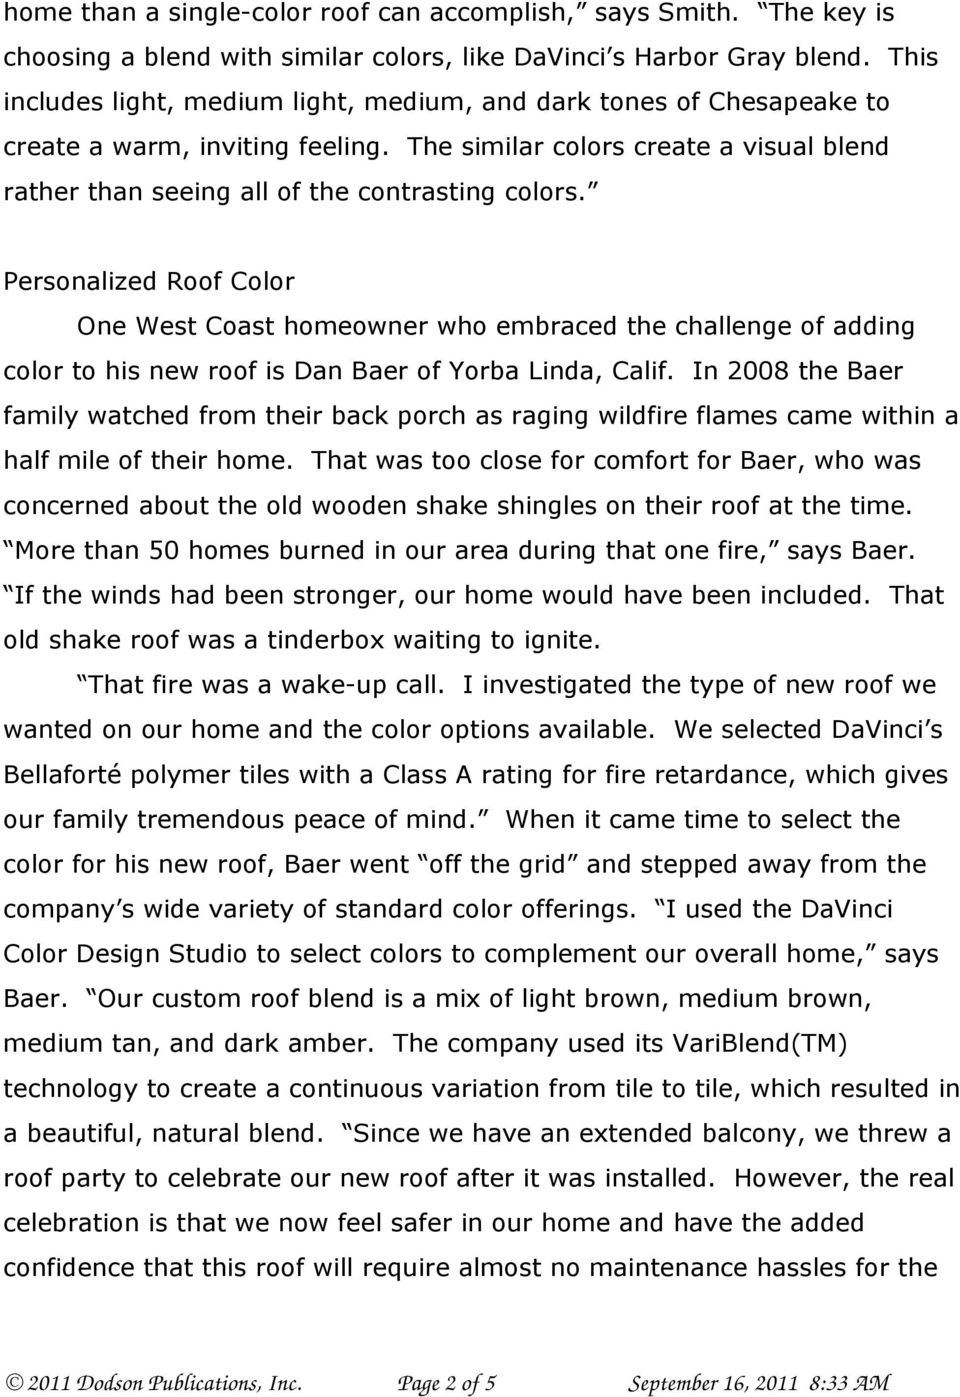 Personalized Roof Color One West Coast homeowner who embraced the challenge of adding color to his new roof is Dan Baer of Yorba Linda, Calif.